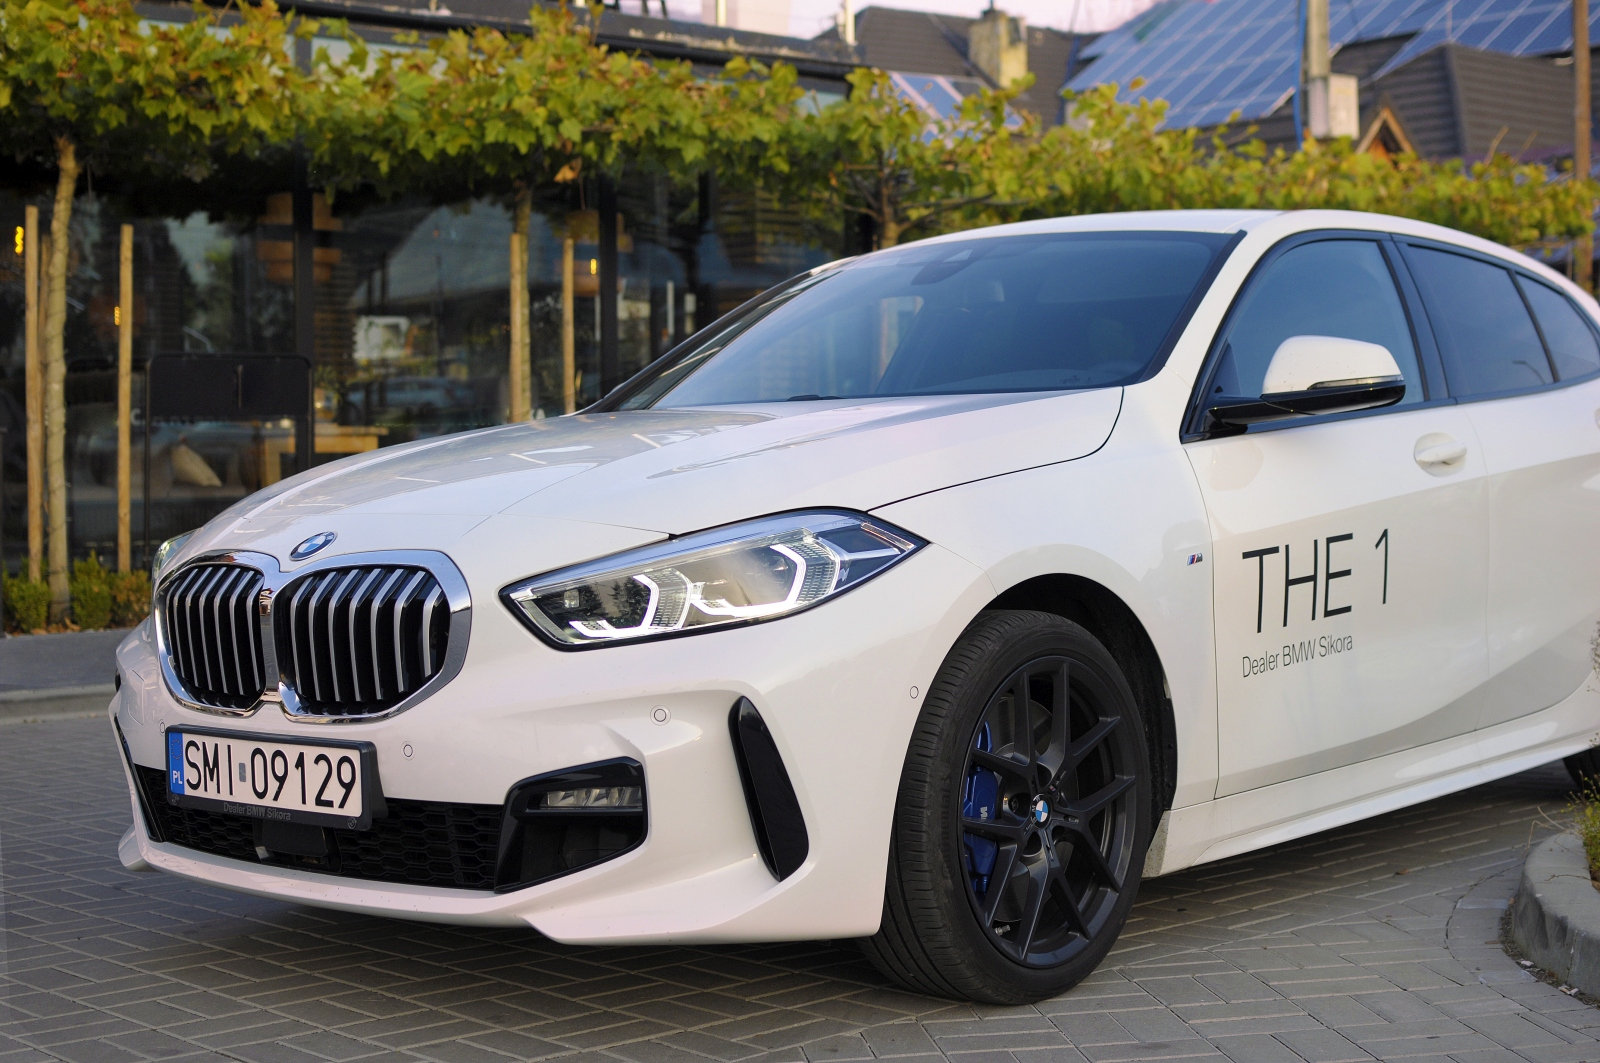 My name is THE 1 – piękny, sportowy kompakt od BMW